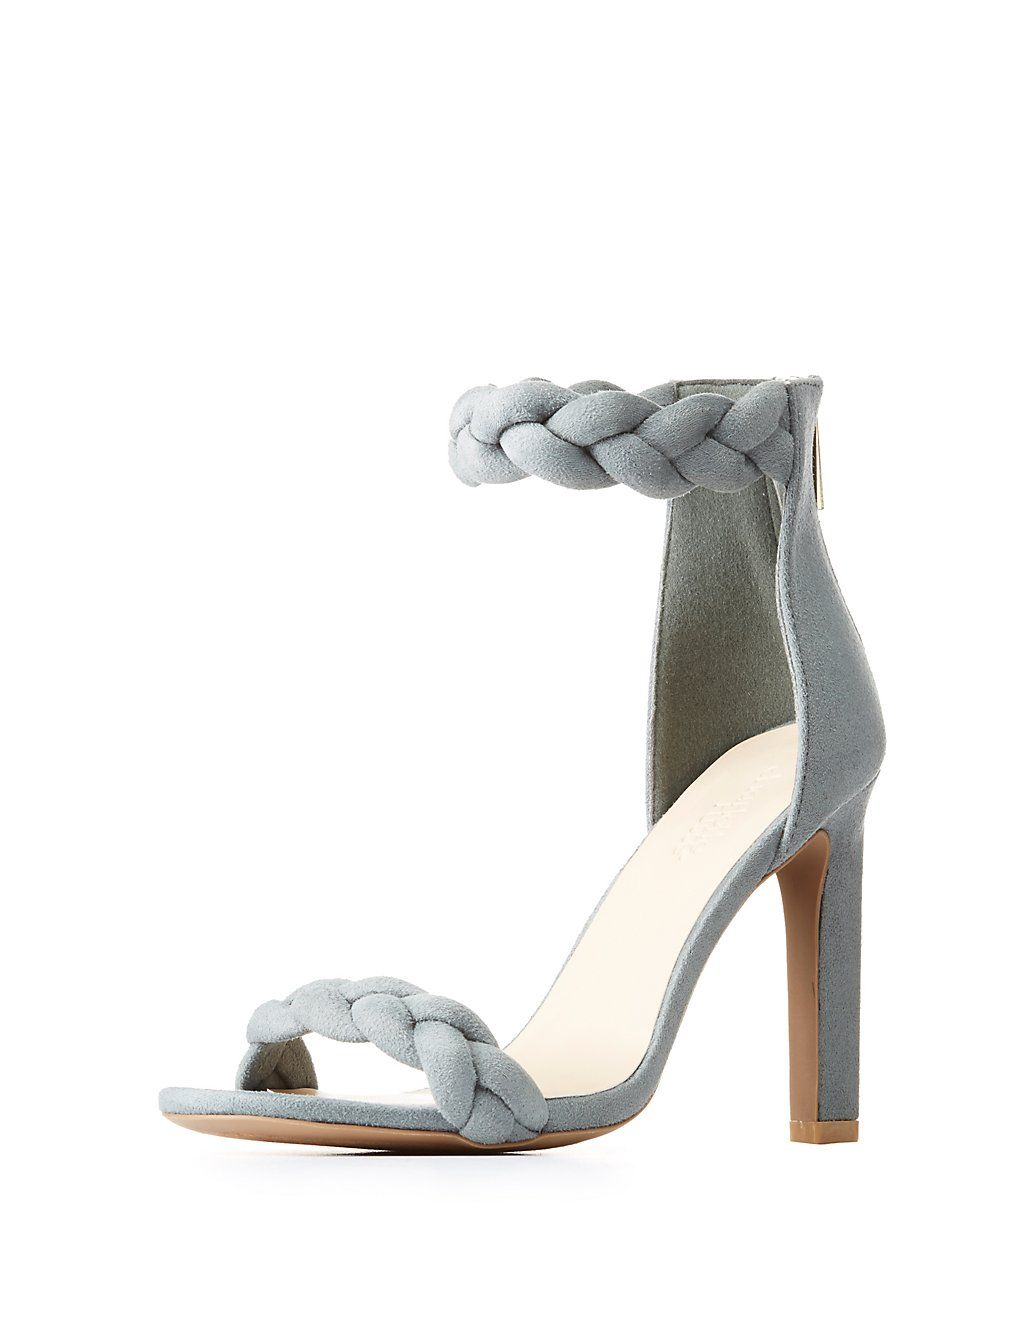 b54da6a708 Braided Ankle Strap Sandals | Charlotte Russe #sandals #summerstyle #shoes # heels #summervibes #summer #fashion #style #shopping #shopmycloset #shopnow  ...